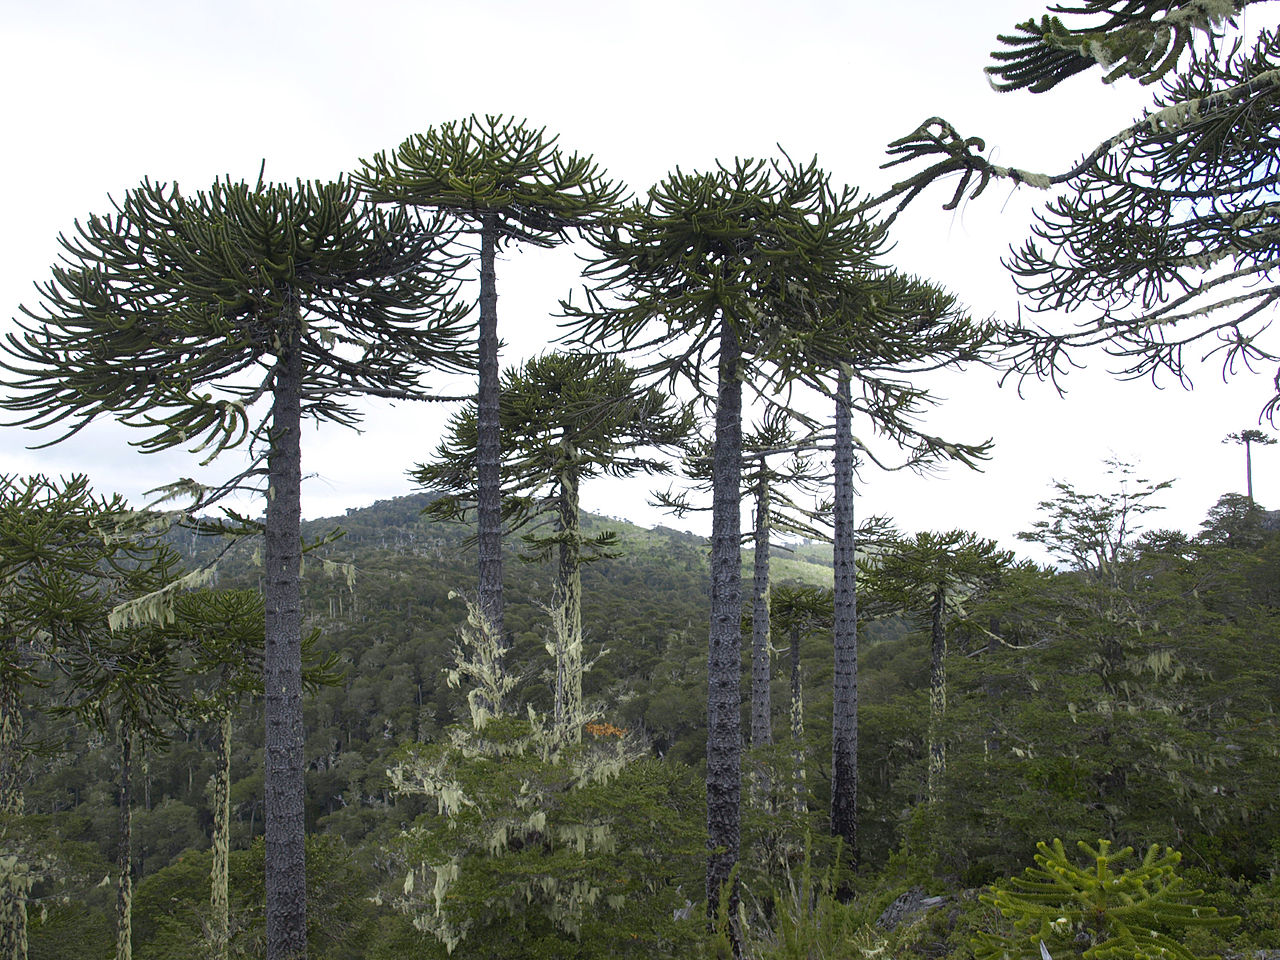 Mixed forest of Araucaria and coigüe in Nahuelbuta National Park, Chile.